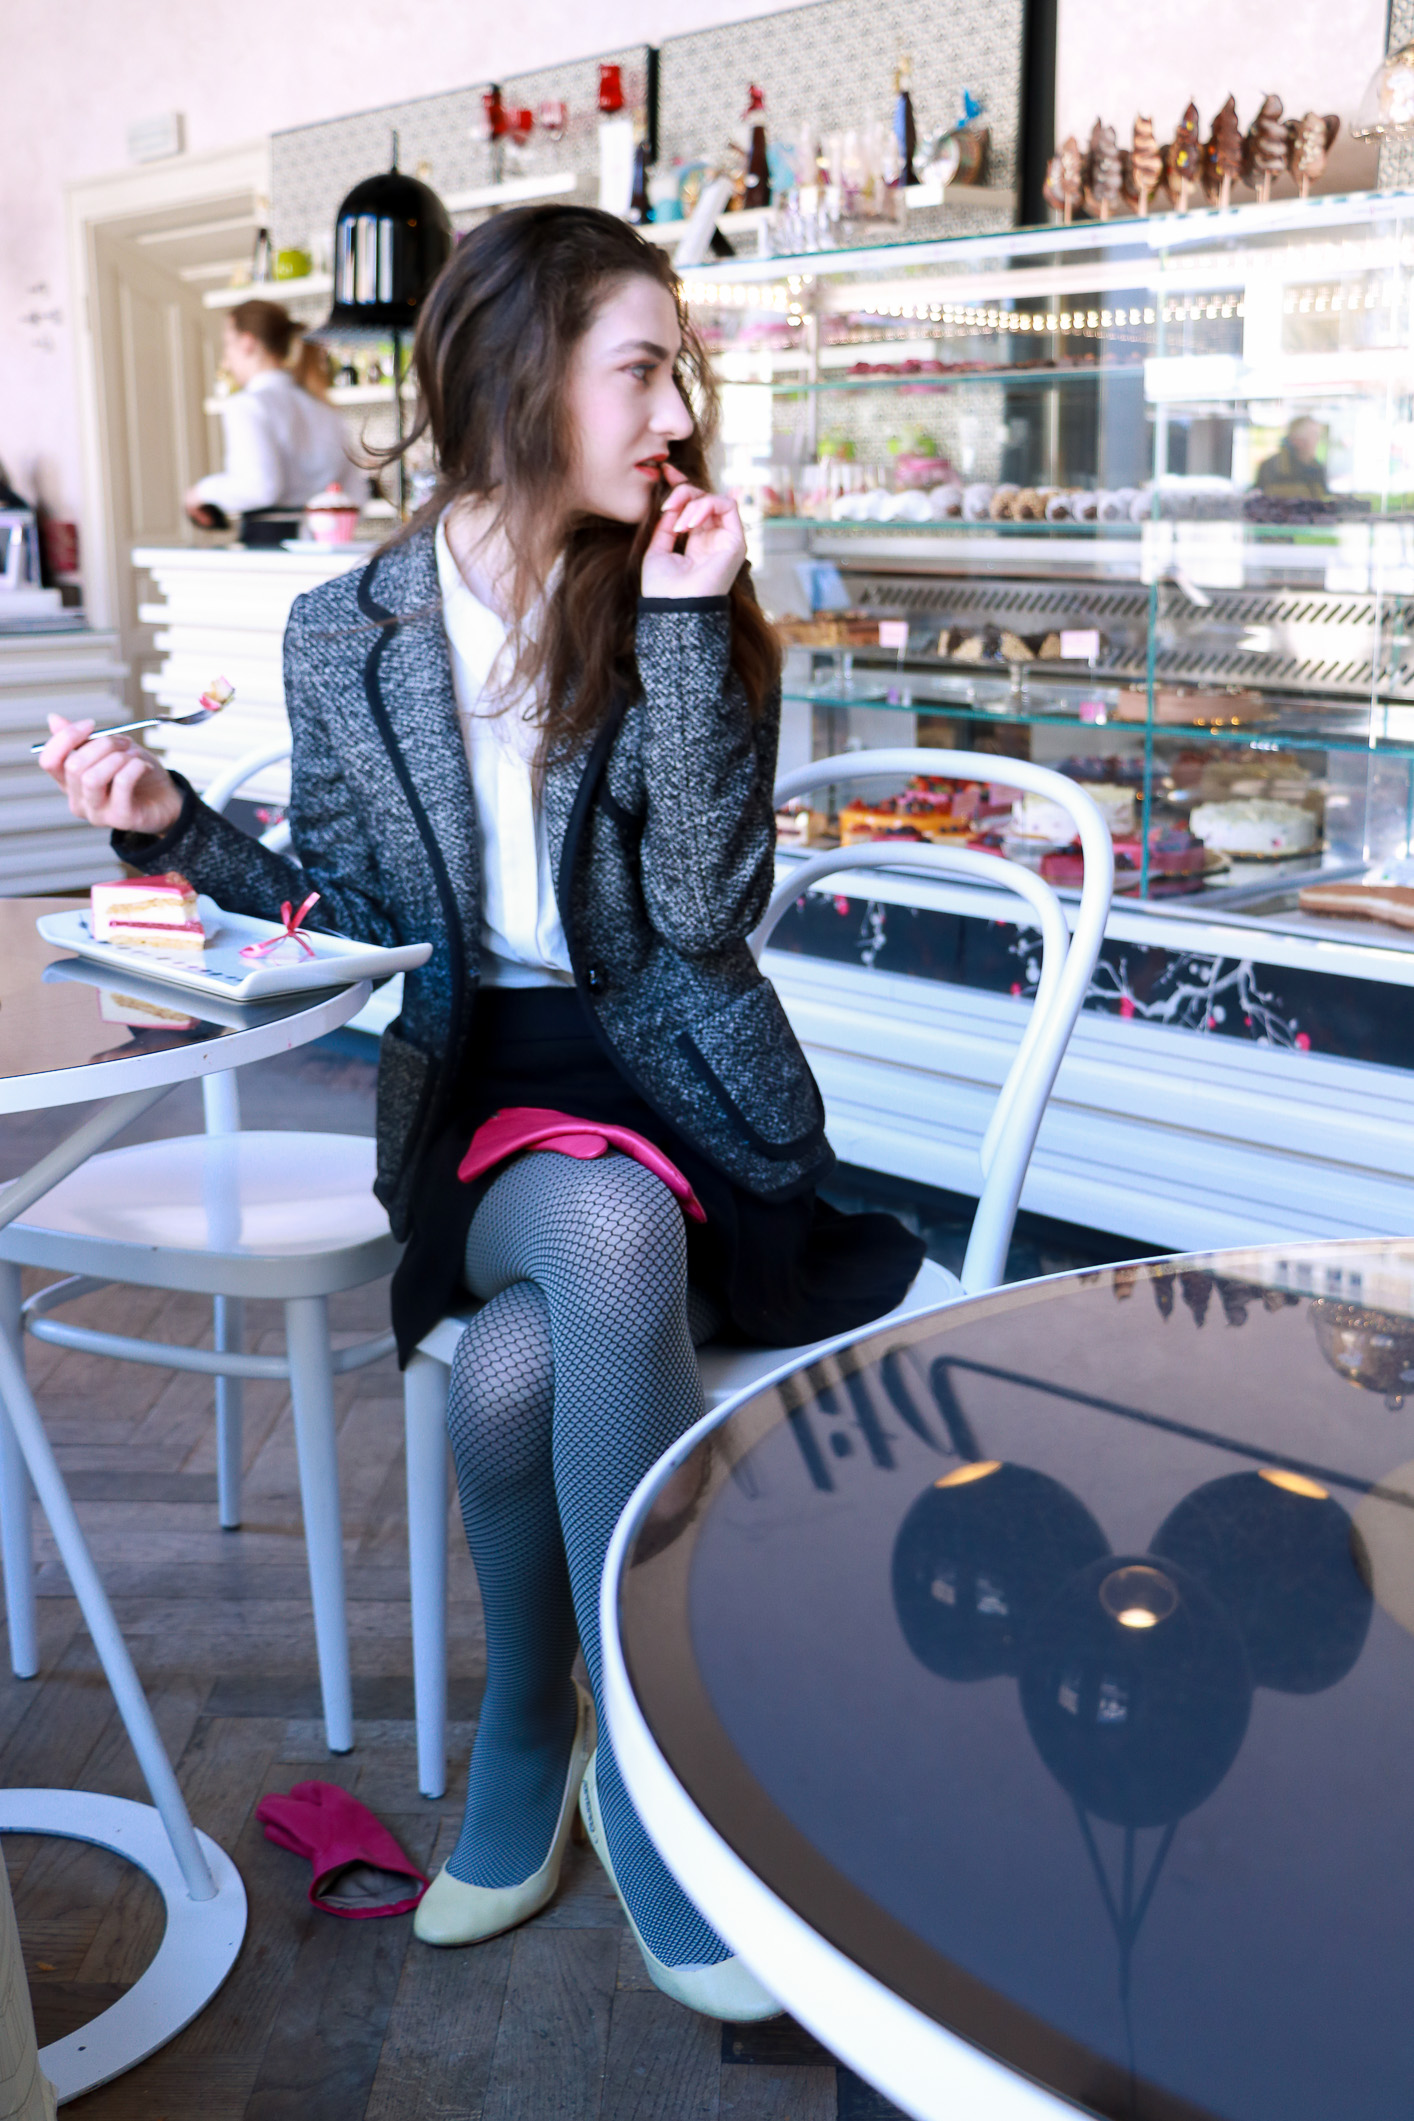 Fashion blogger Veronika Lipar of Brunette From Wall Street sharing her Valentine's Outfit